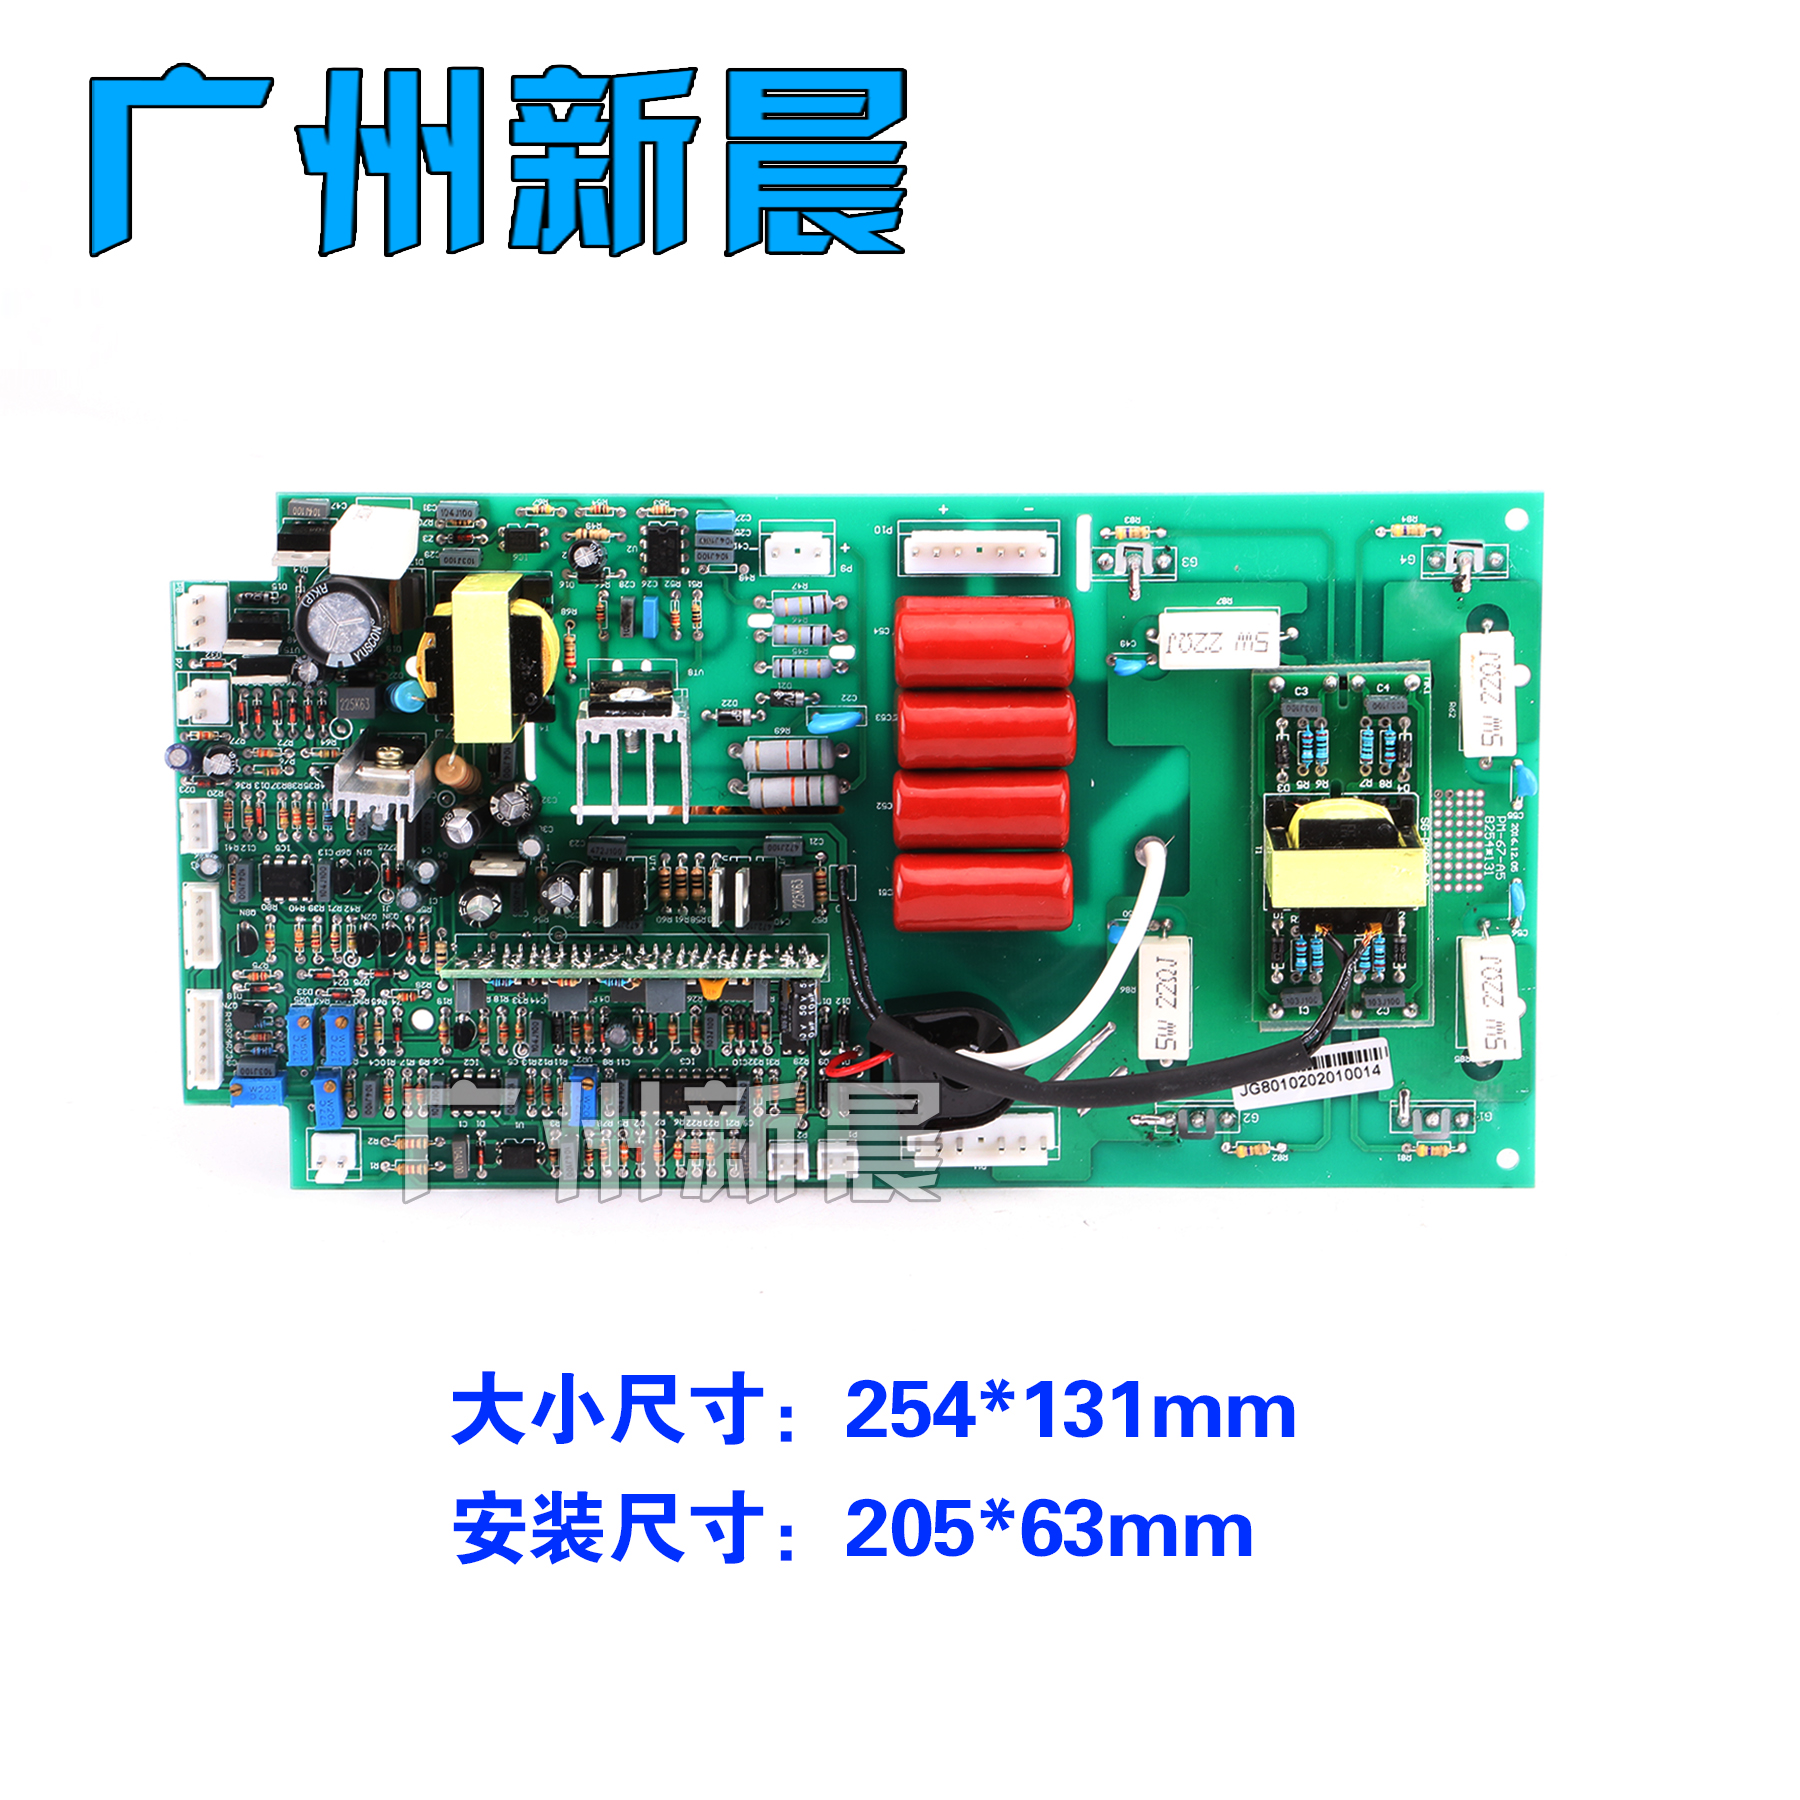 цена на DC Welding Machine Circuit Board Accessories Single Tube 1 GBT Dual Power ZX7-315/400 Upper Plate Inverter Board